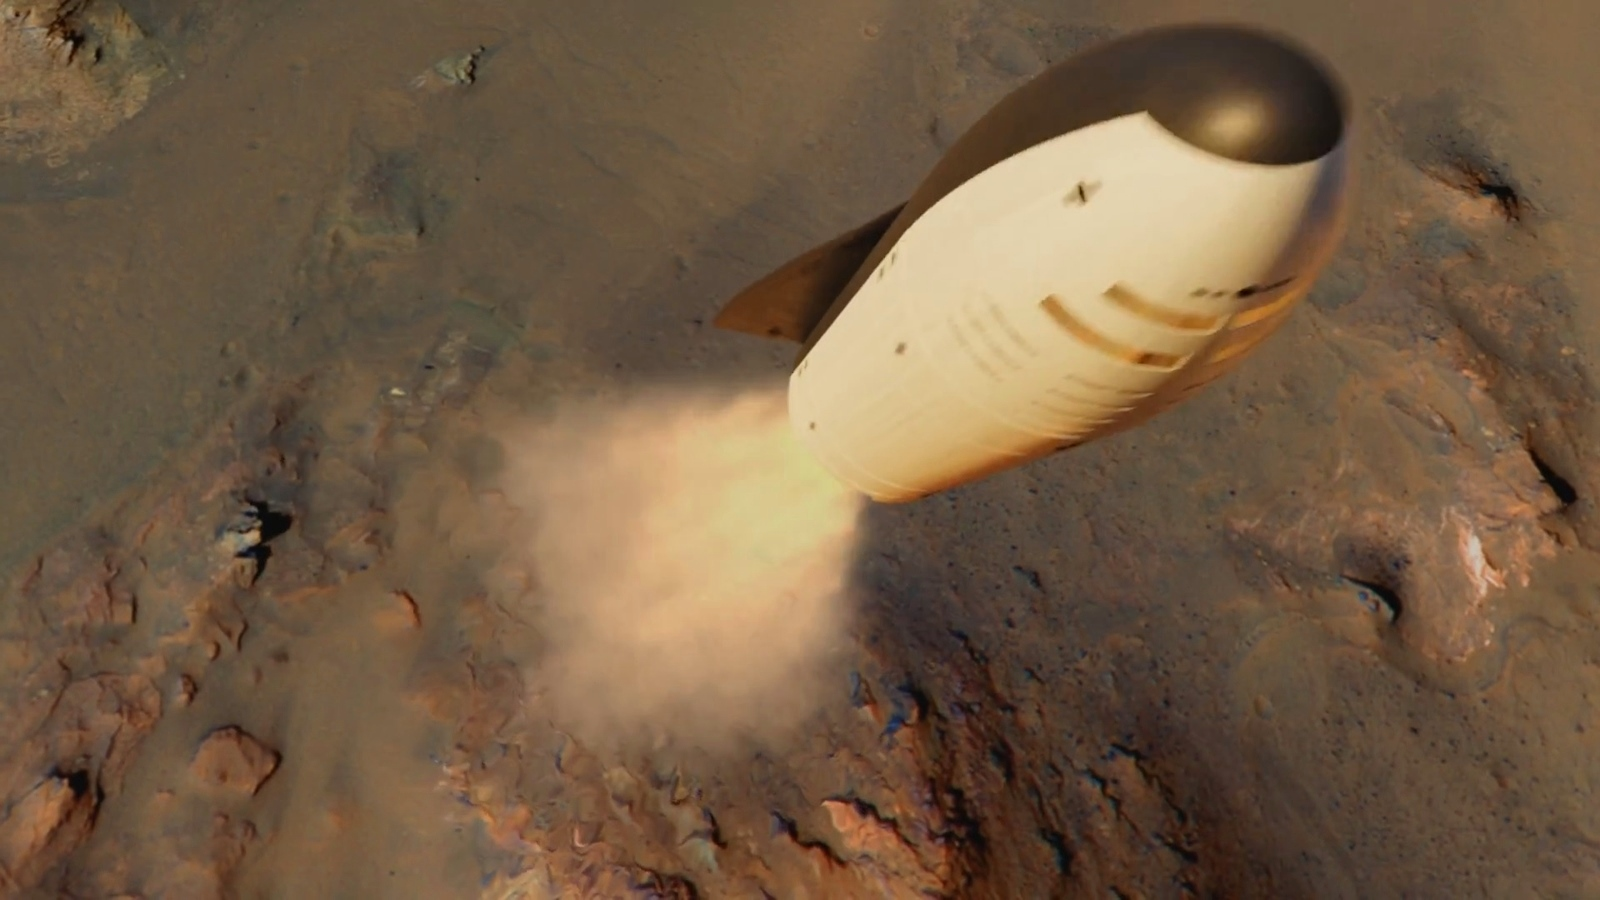 SpaceX BFR spaceship (BFS) landing on Mars